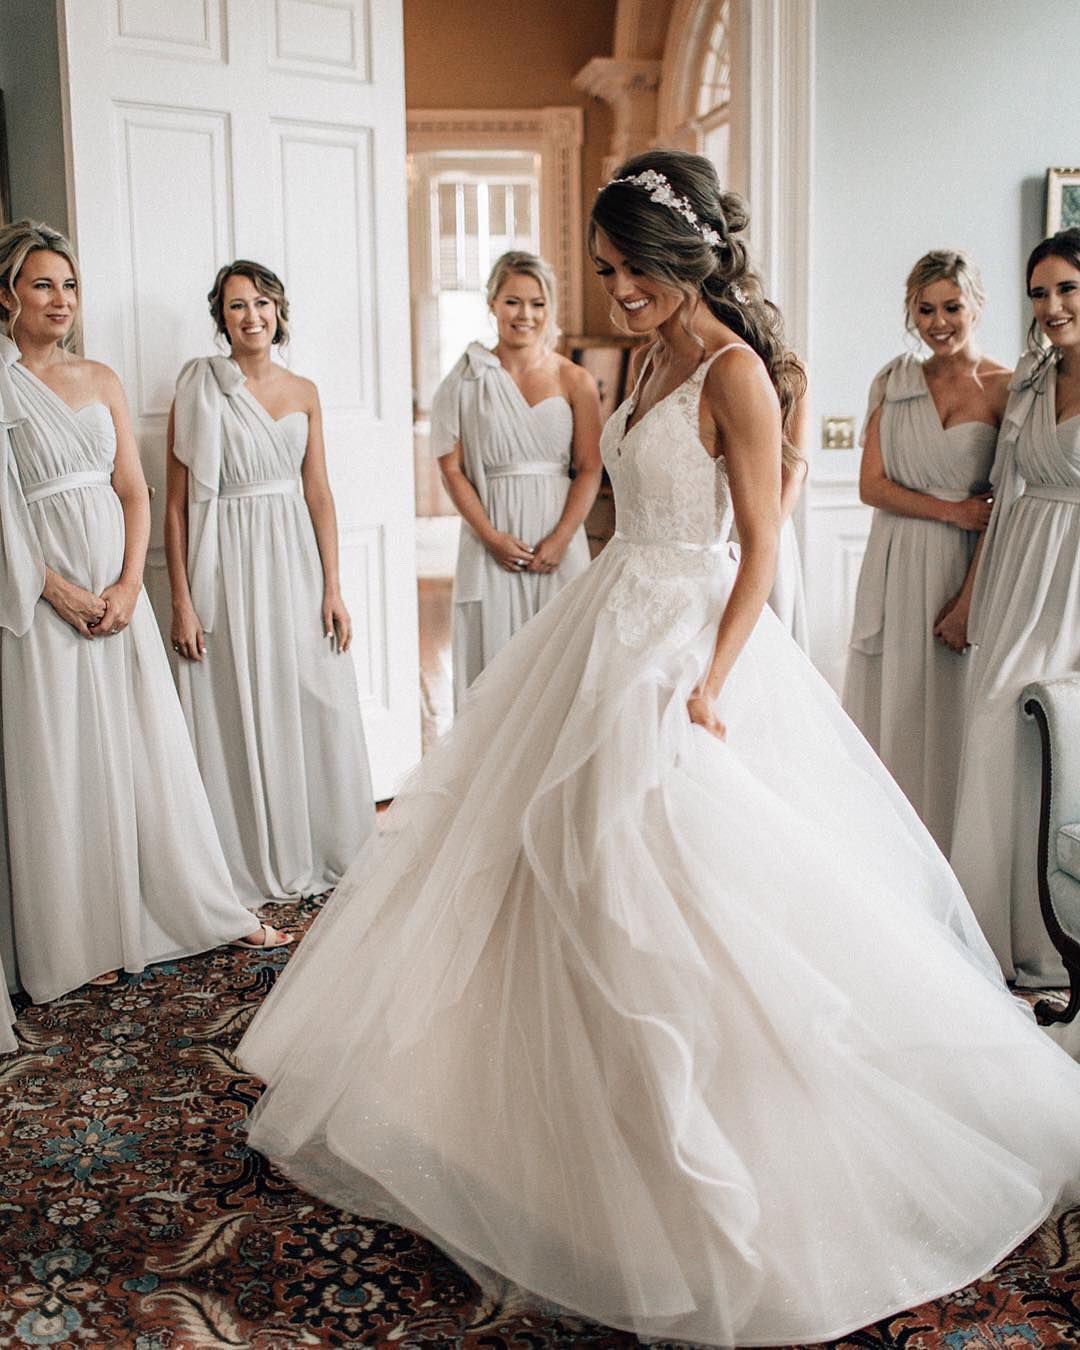 """Jlm Couture Wedding Dresses With Pockets: Graceful Brides On Instagram: """"@cmcoving Looking Amazing ️"""